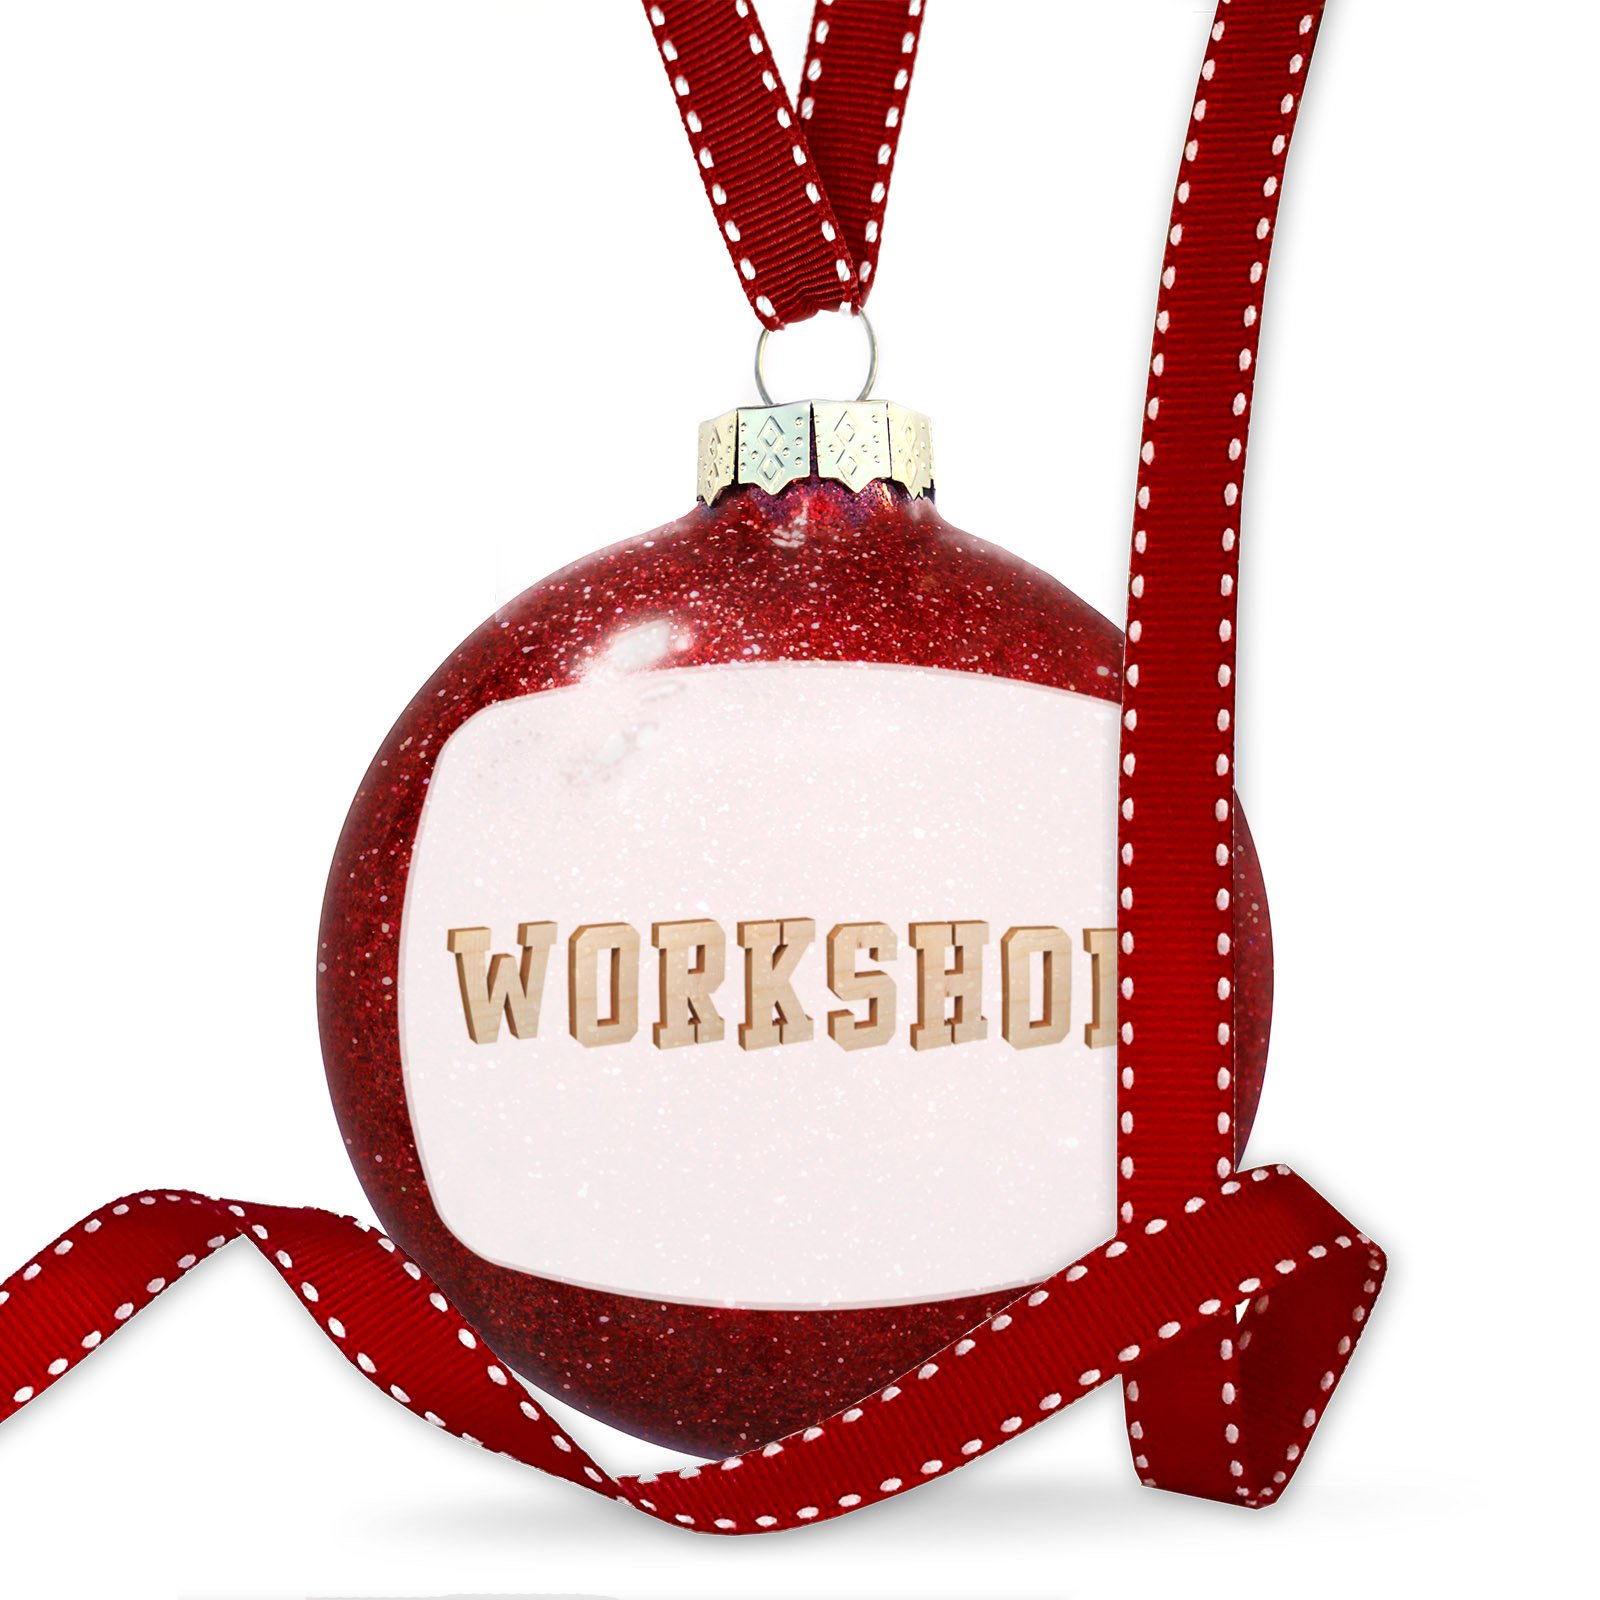 Christmas Decoration Workshop Plywood wood Lettering Ornament by NEONBLOND (Image #1)